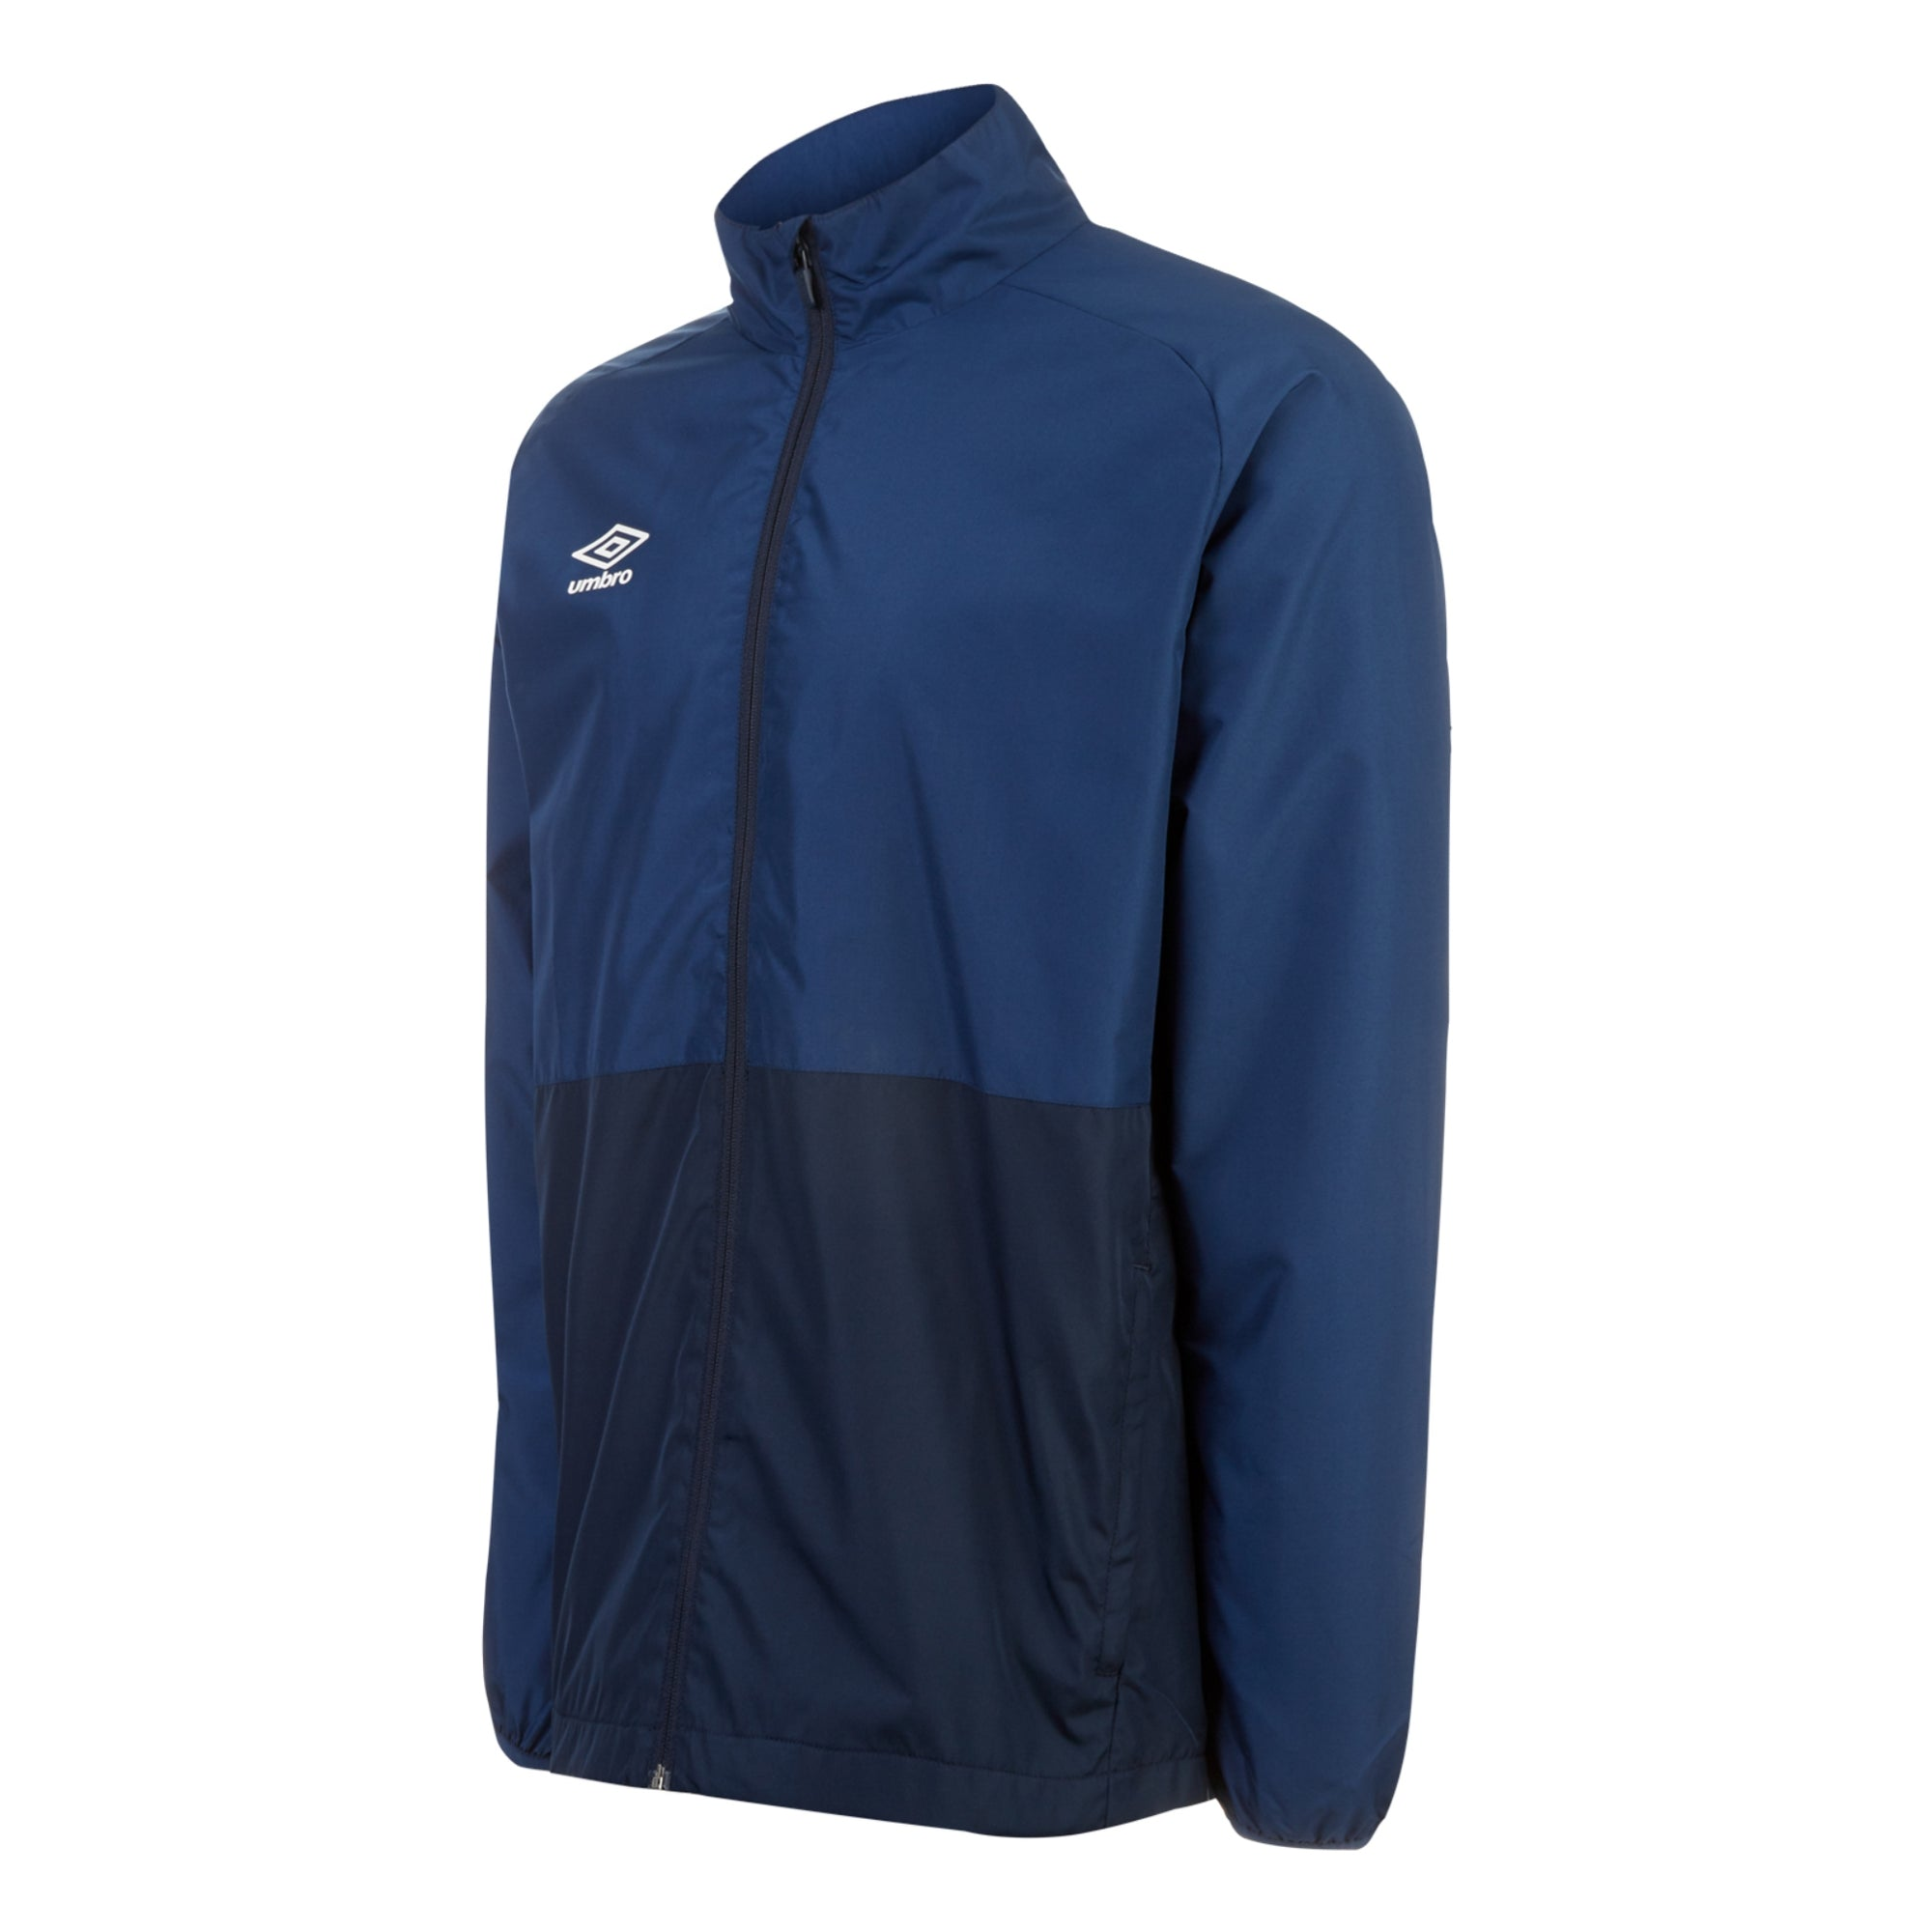 Umbro Training Shower Jacket - Navy/Dark Navy